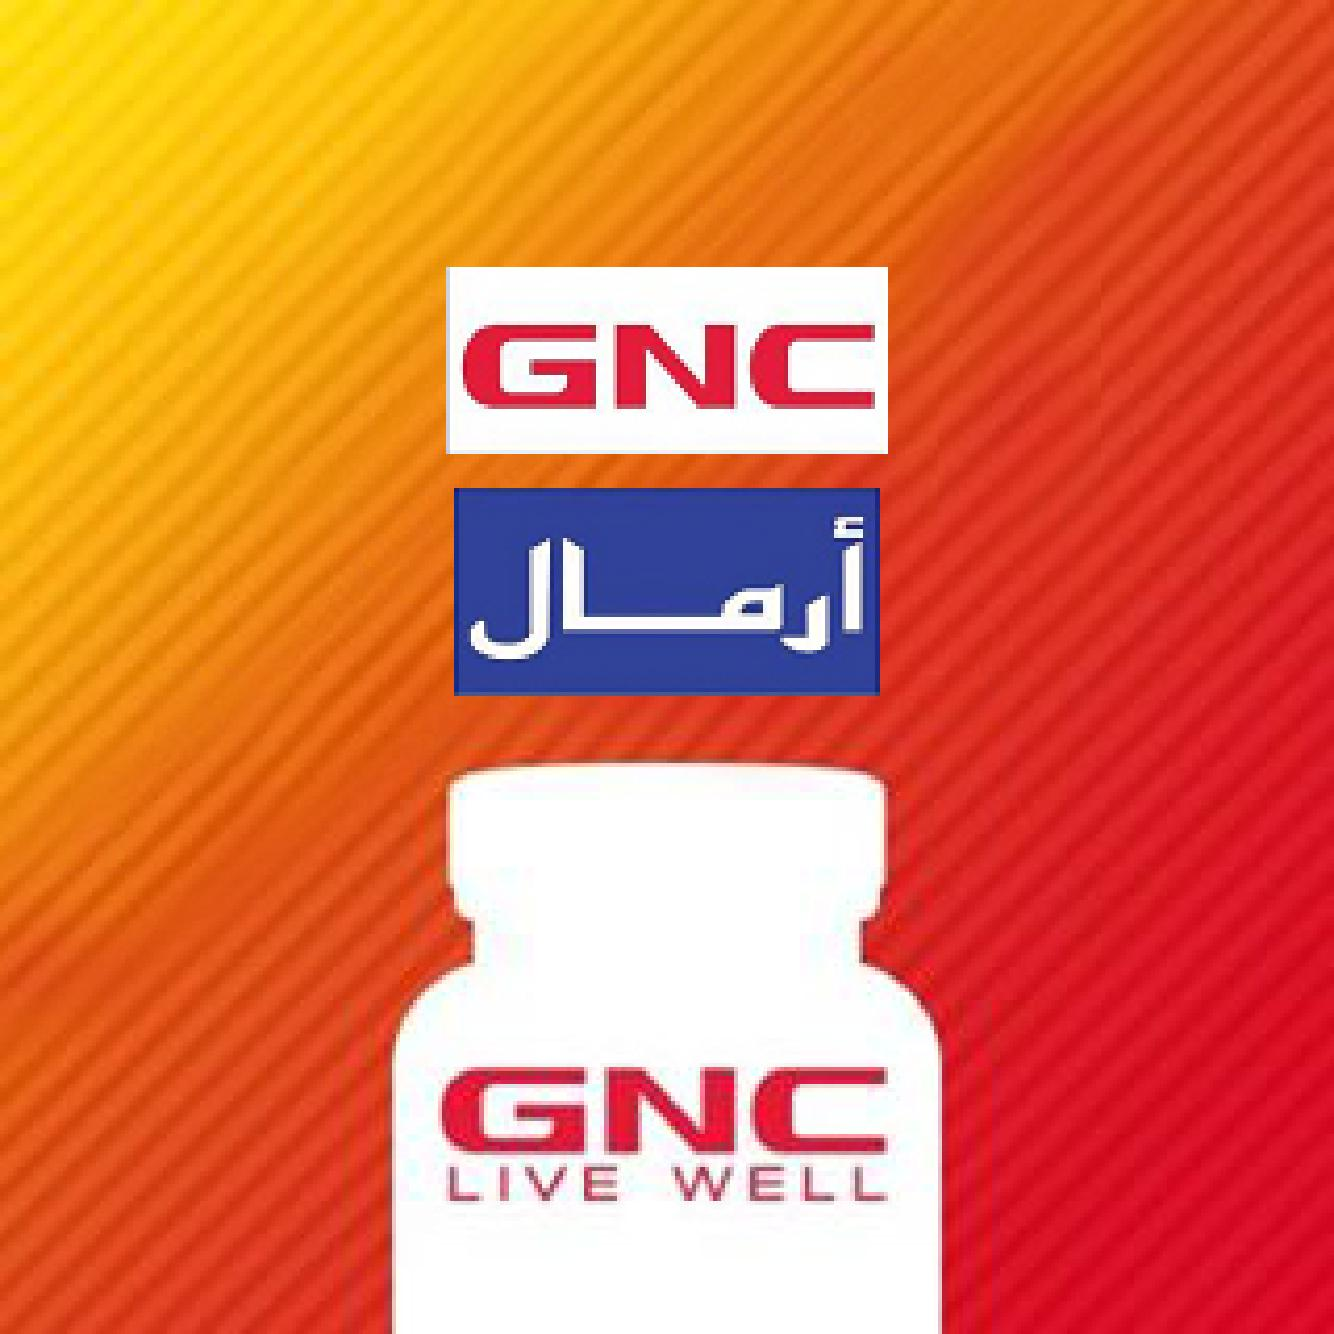 GNC ARMAL KSA AUG CATALOGUE by ARMAL GNC KSA - issuu